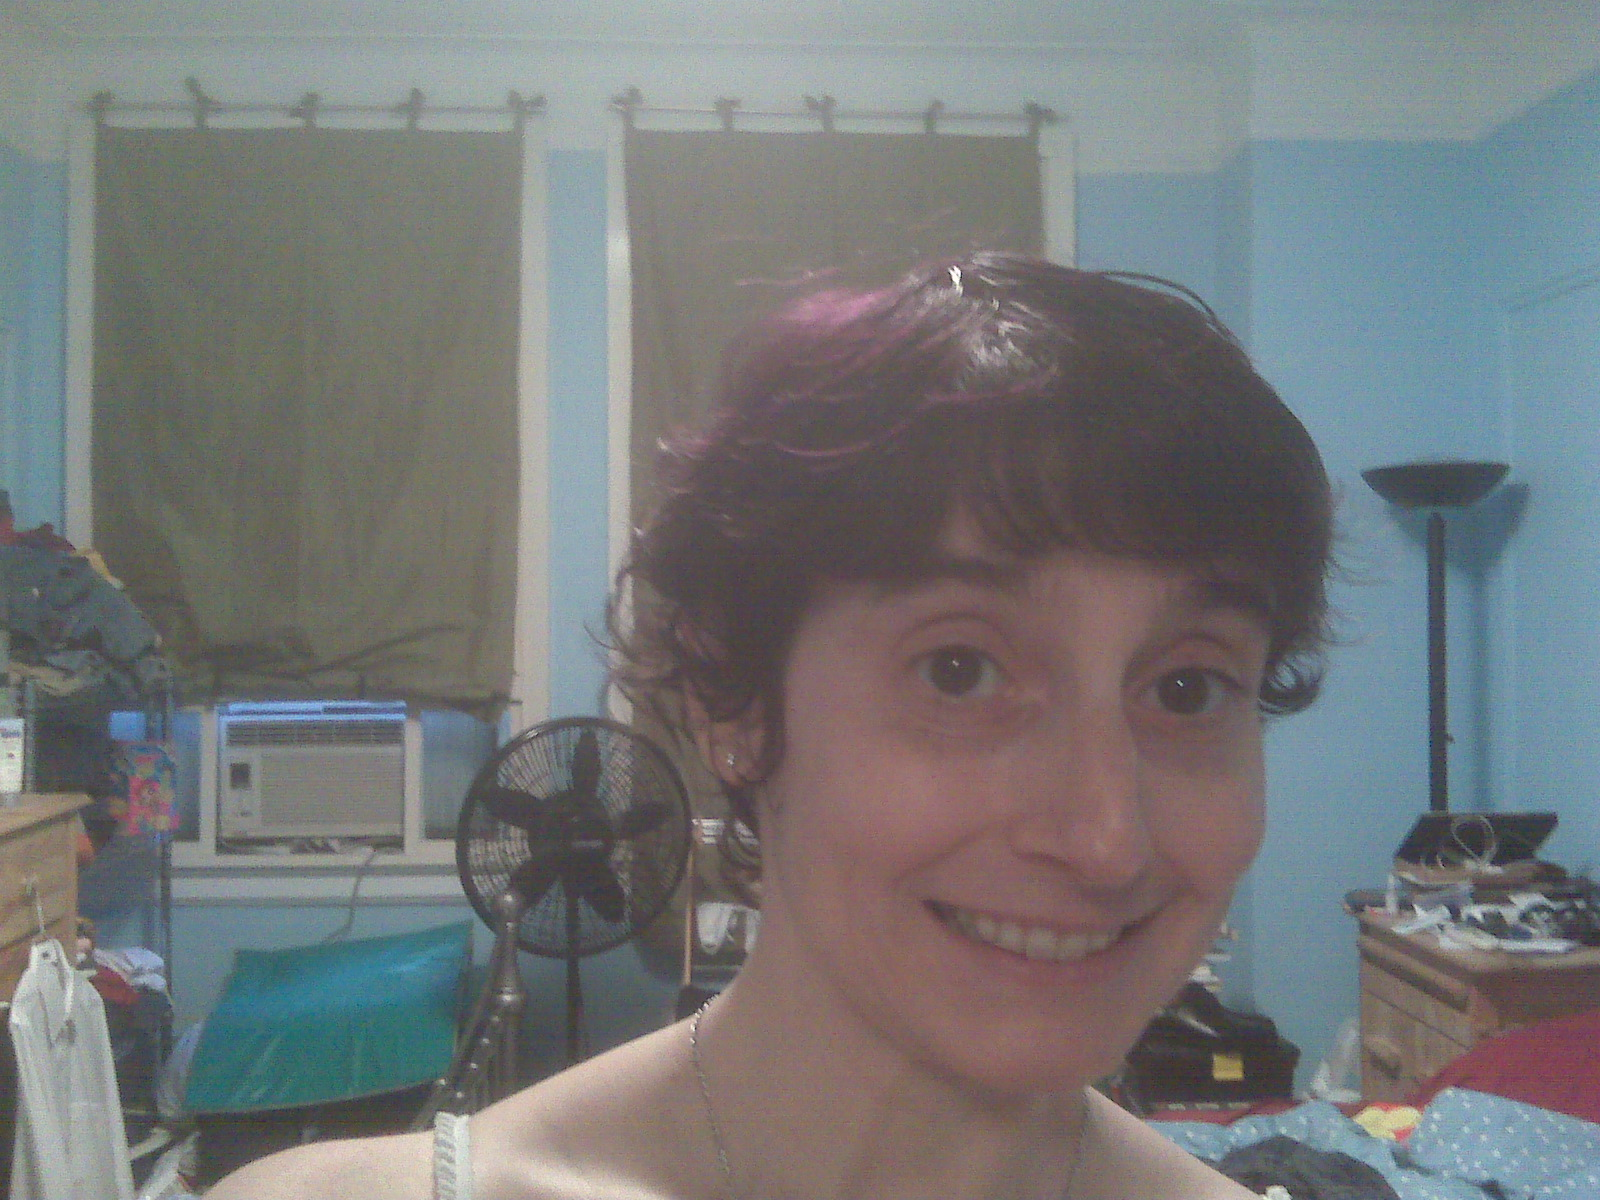 Thanks to Dianne and Steph, I have purple highlights.